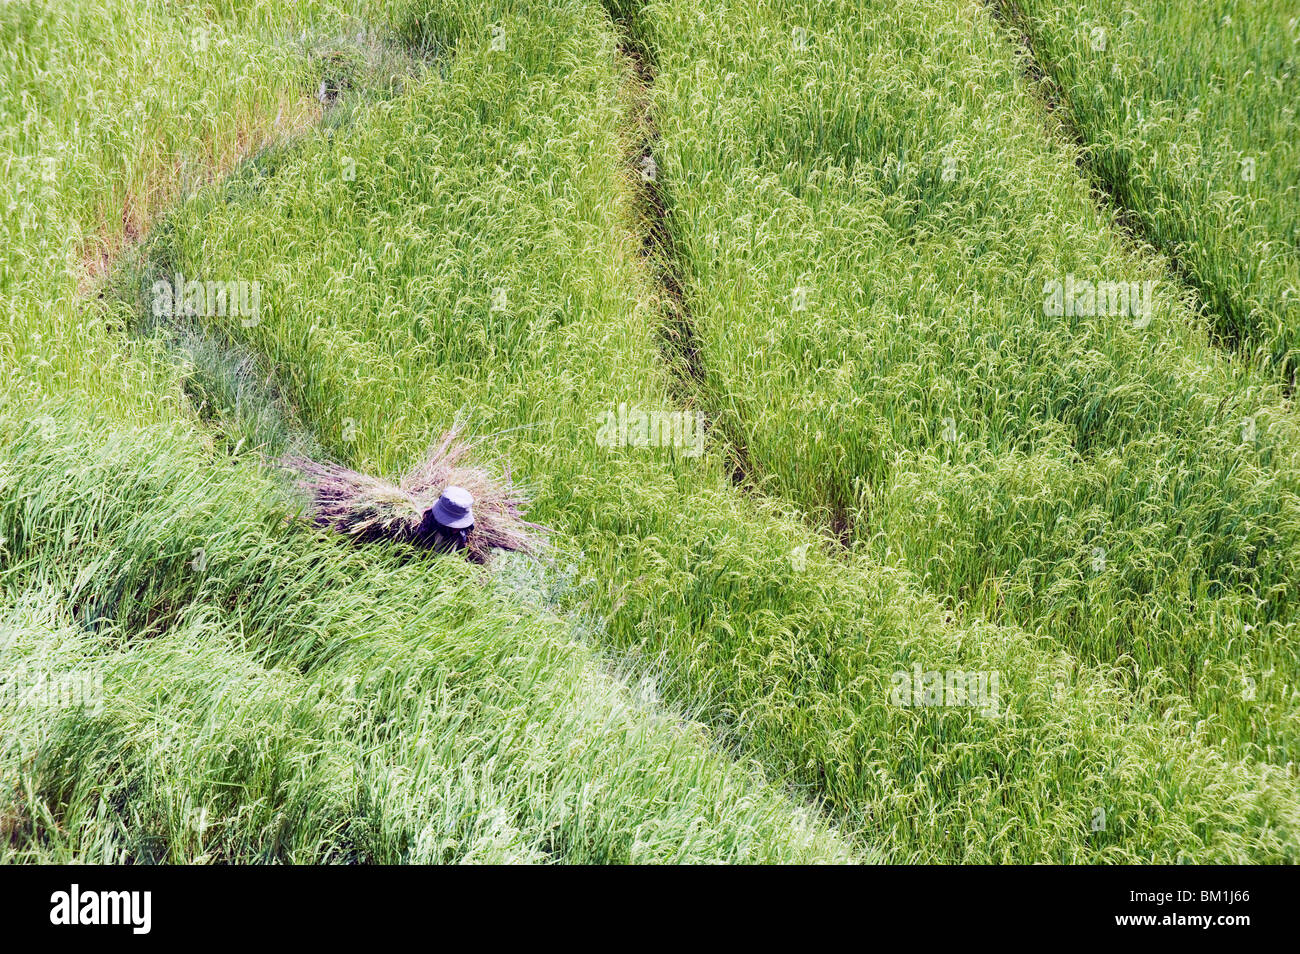 Woman working in a rice field, Punakha, Bhutan, Asia - Stock Image